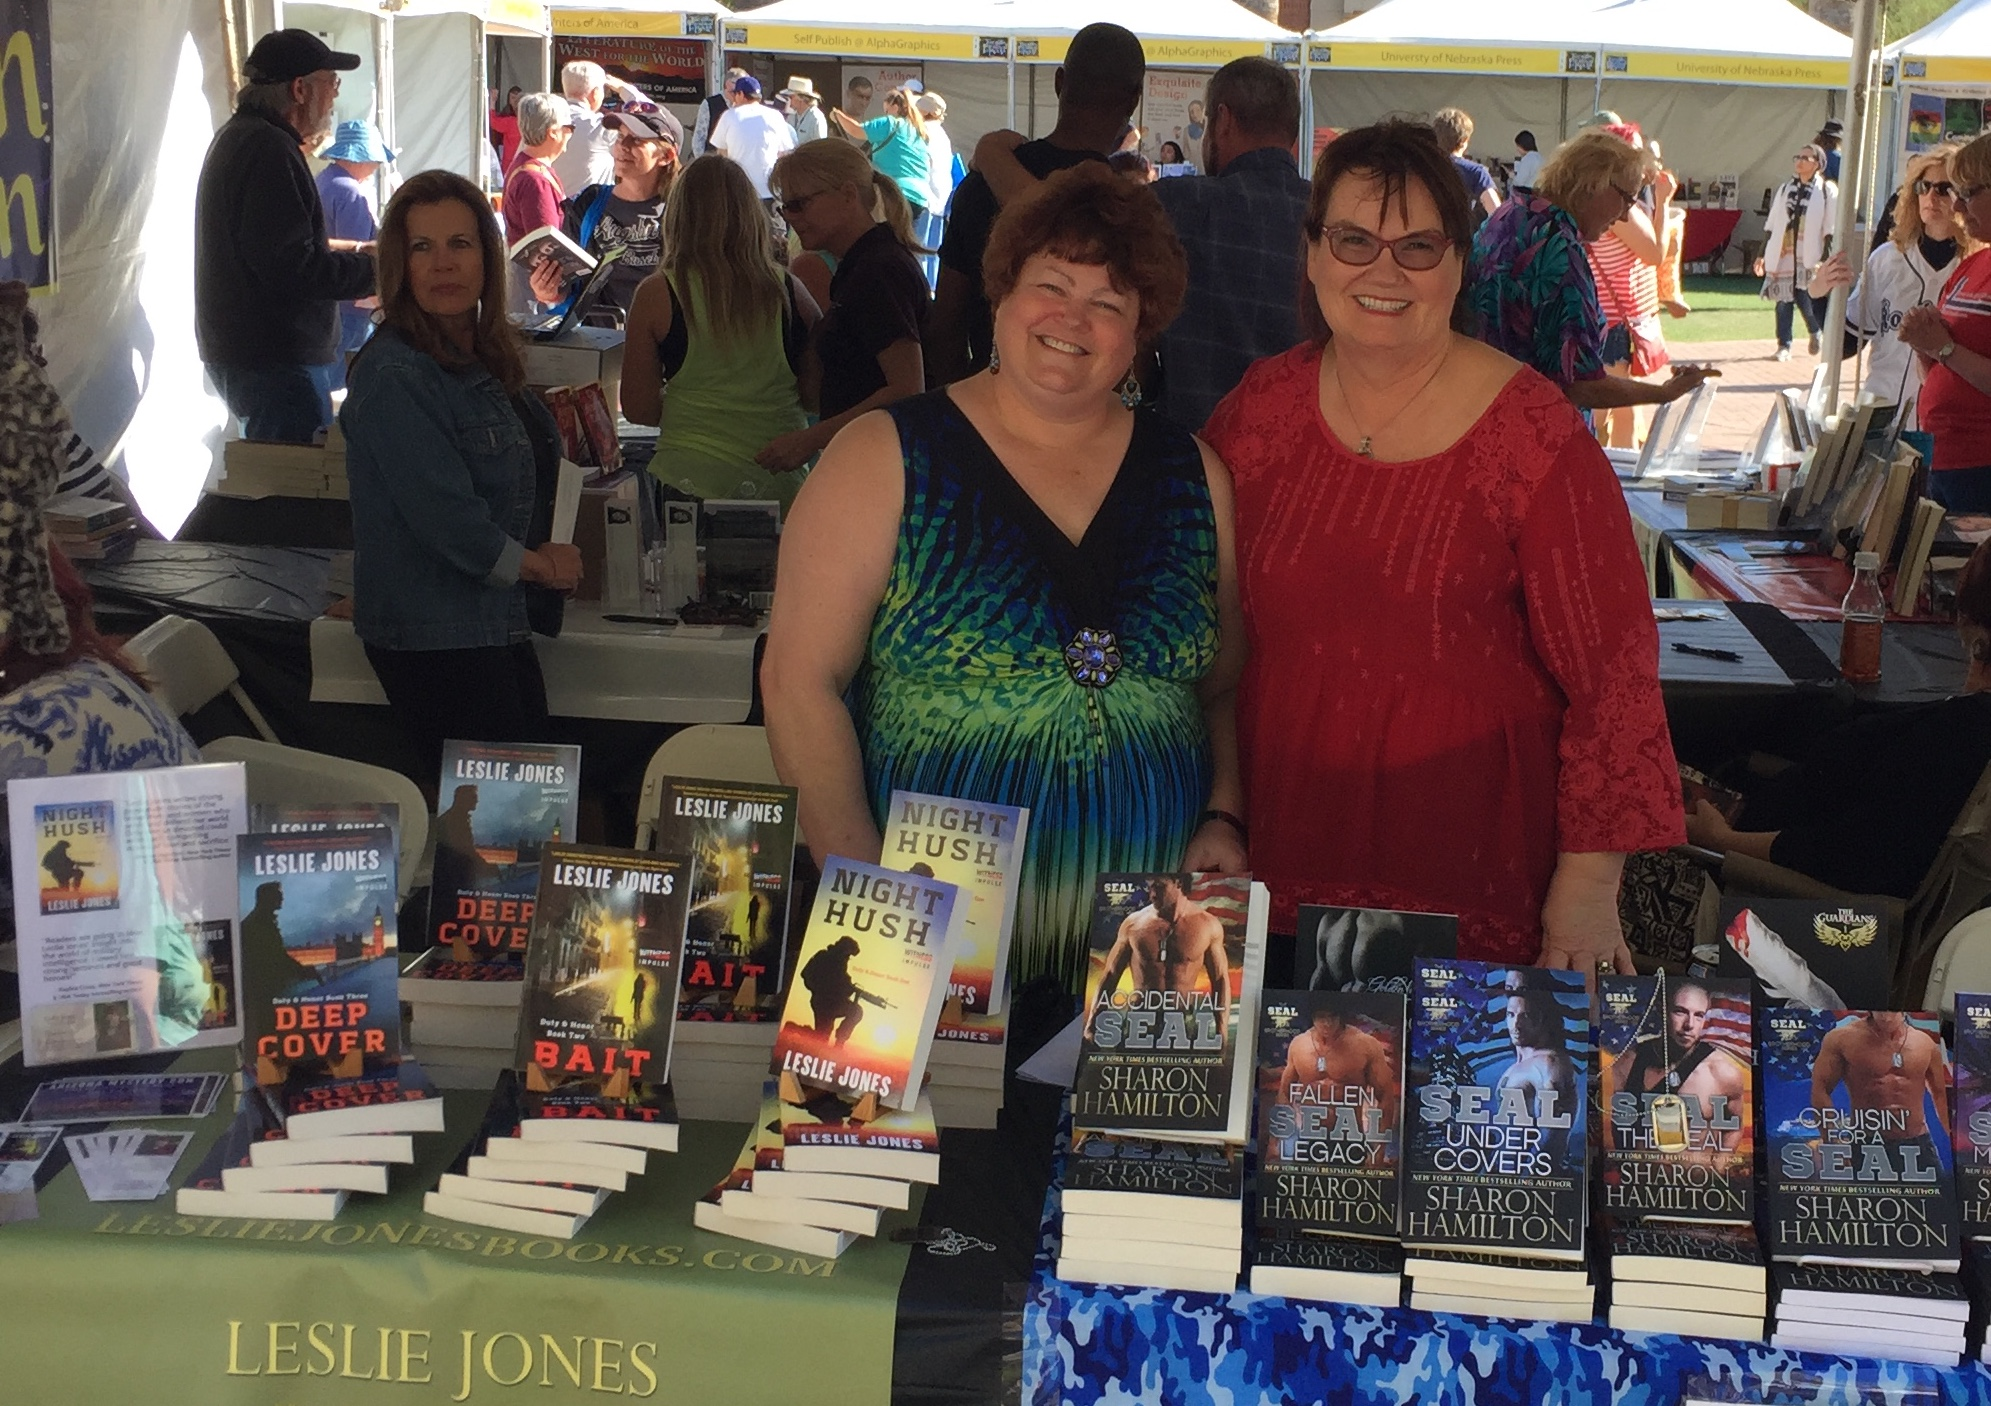 Leslie Jones & Sharon Hamilton at the Tucson Festival of Books